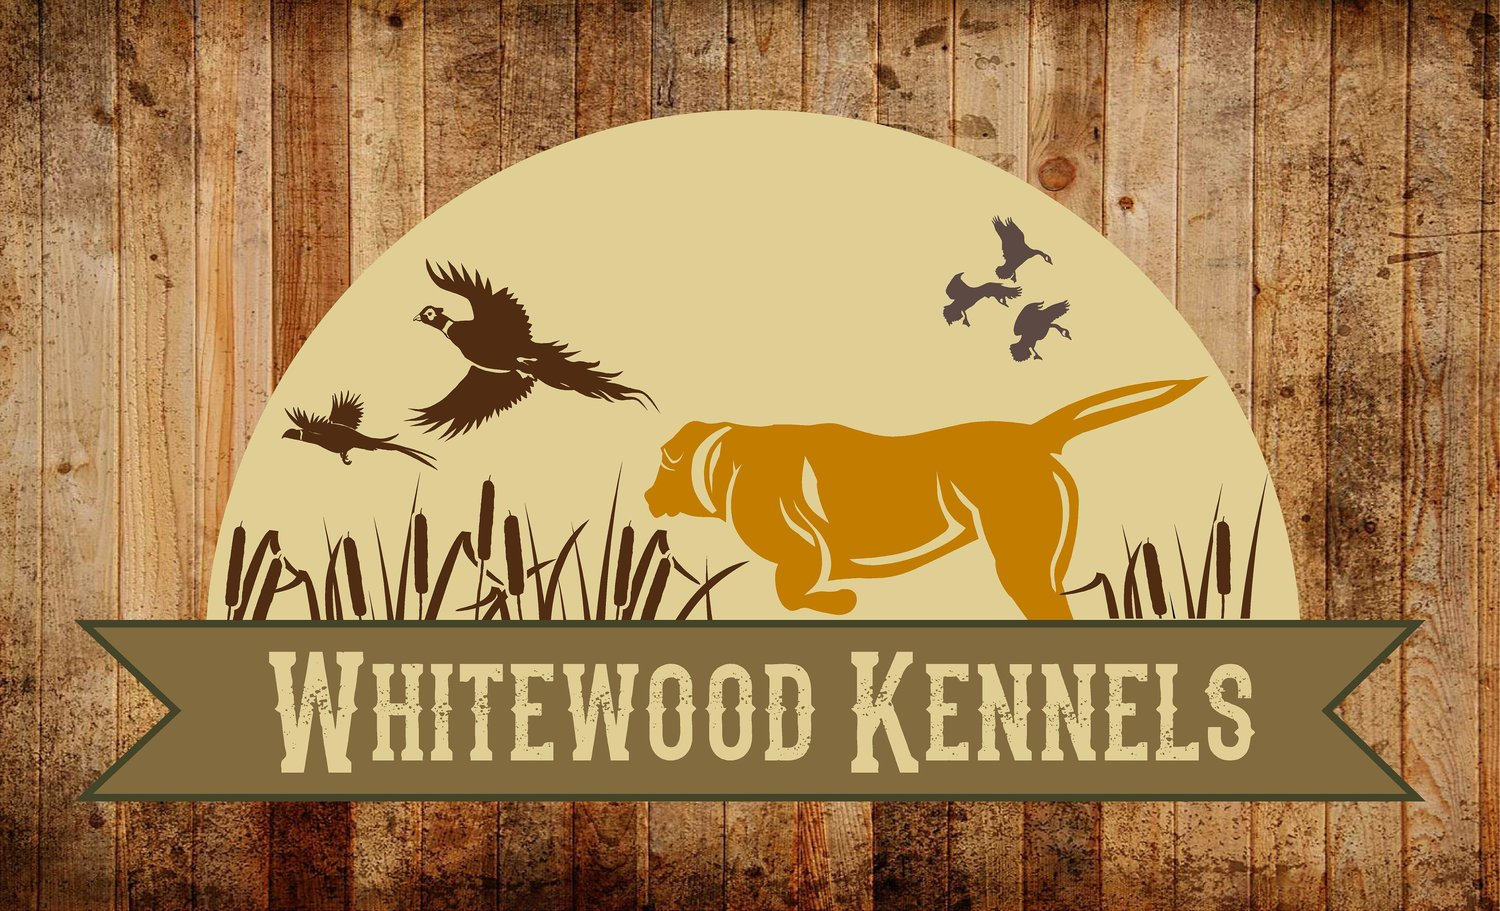 Whitewood Kennels